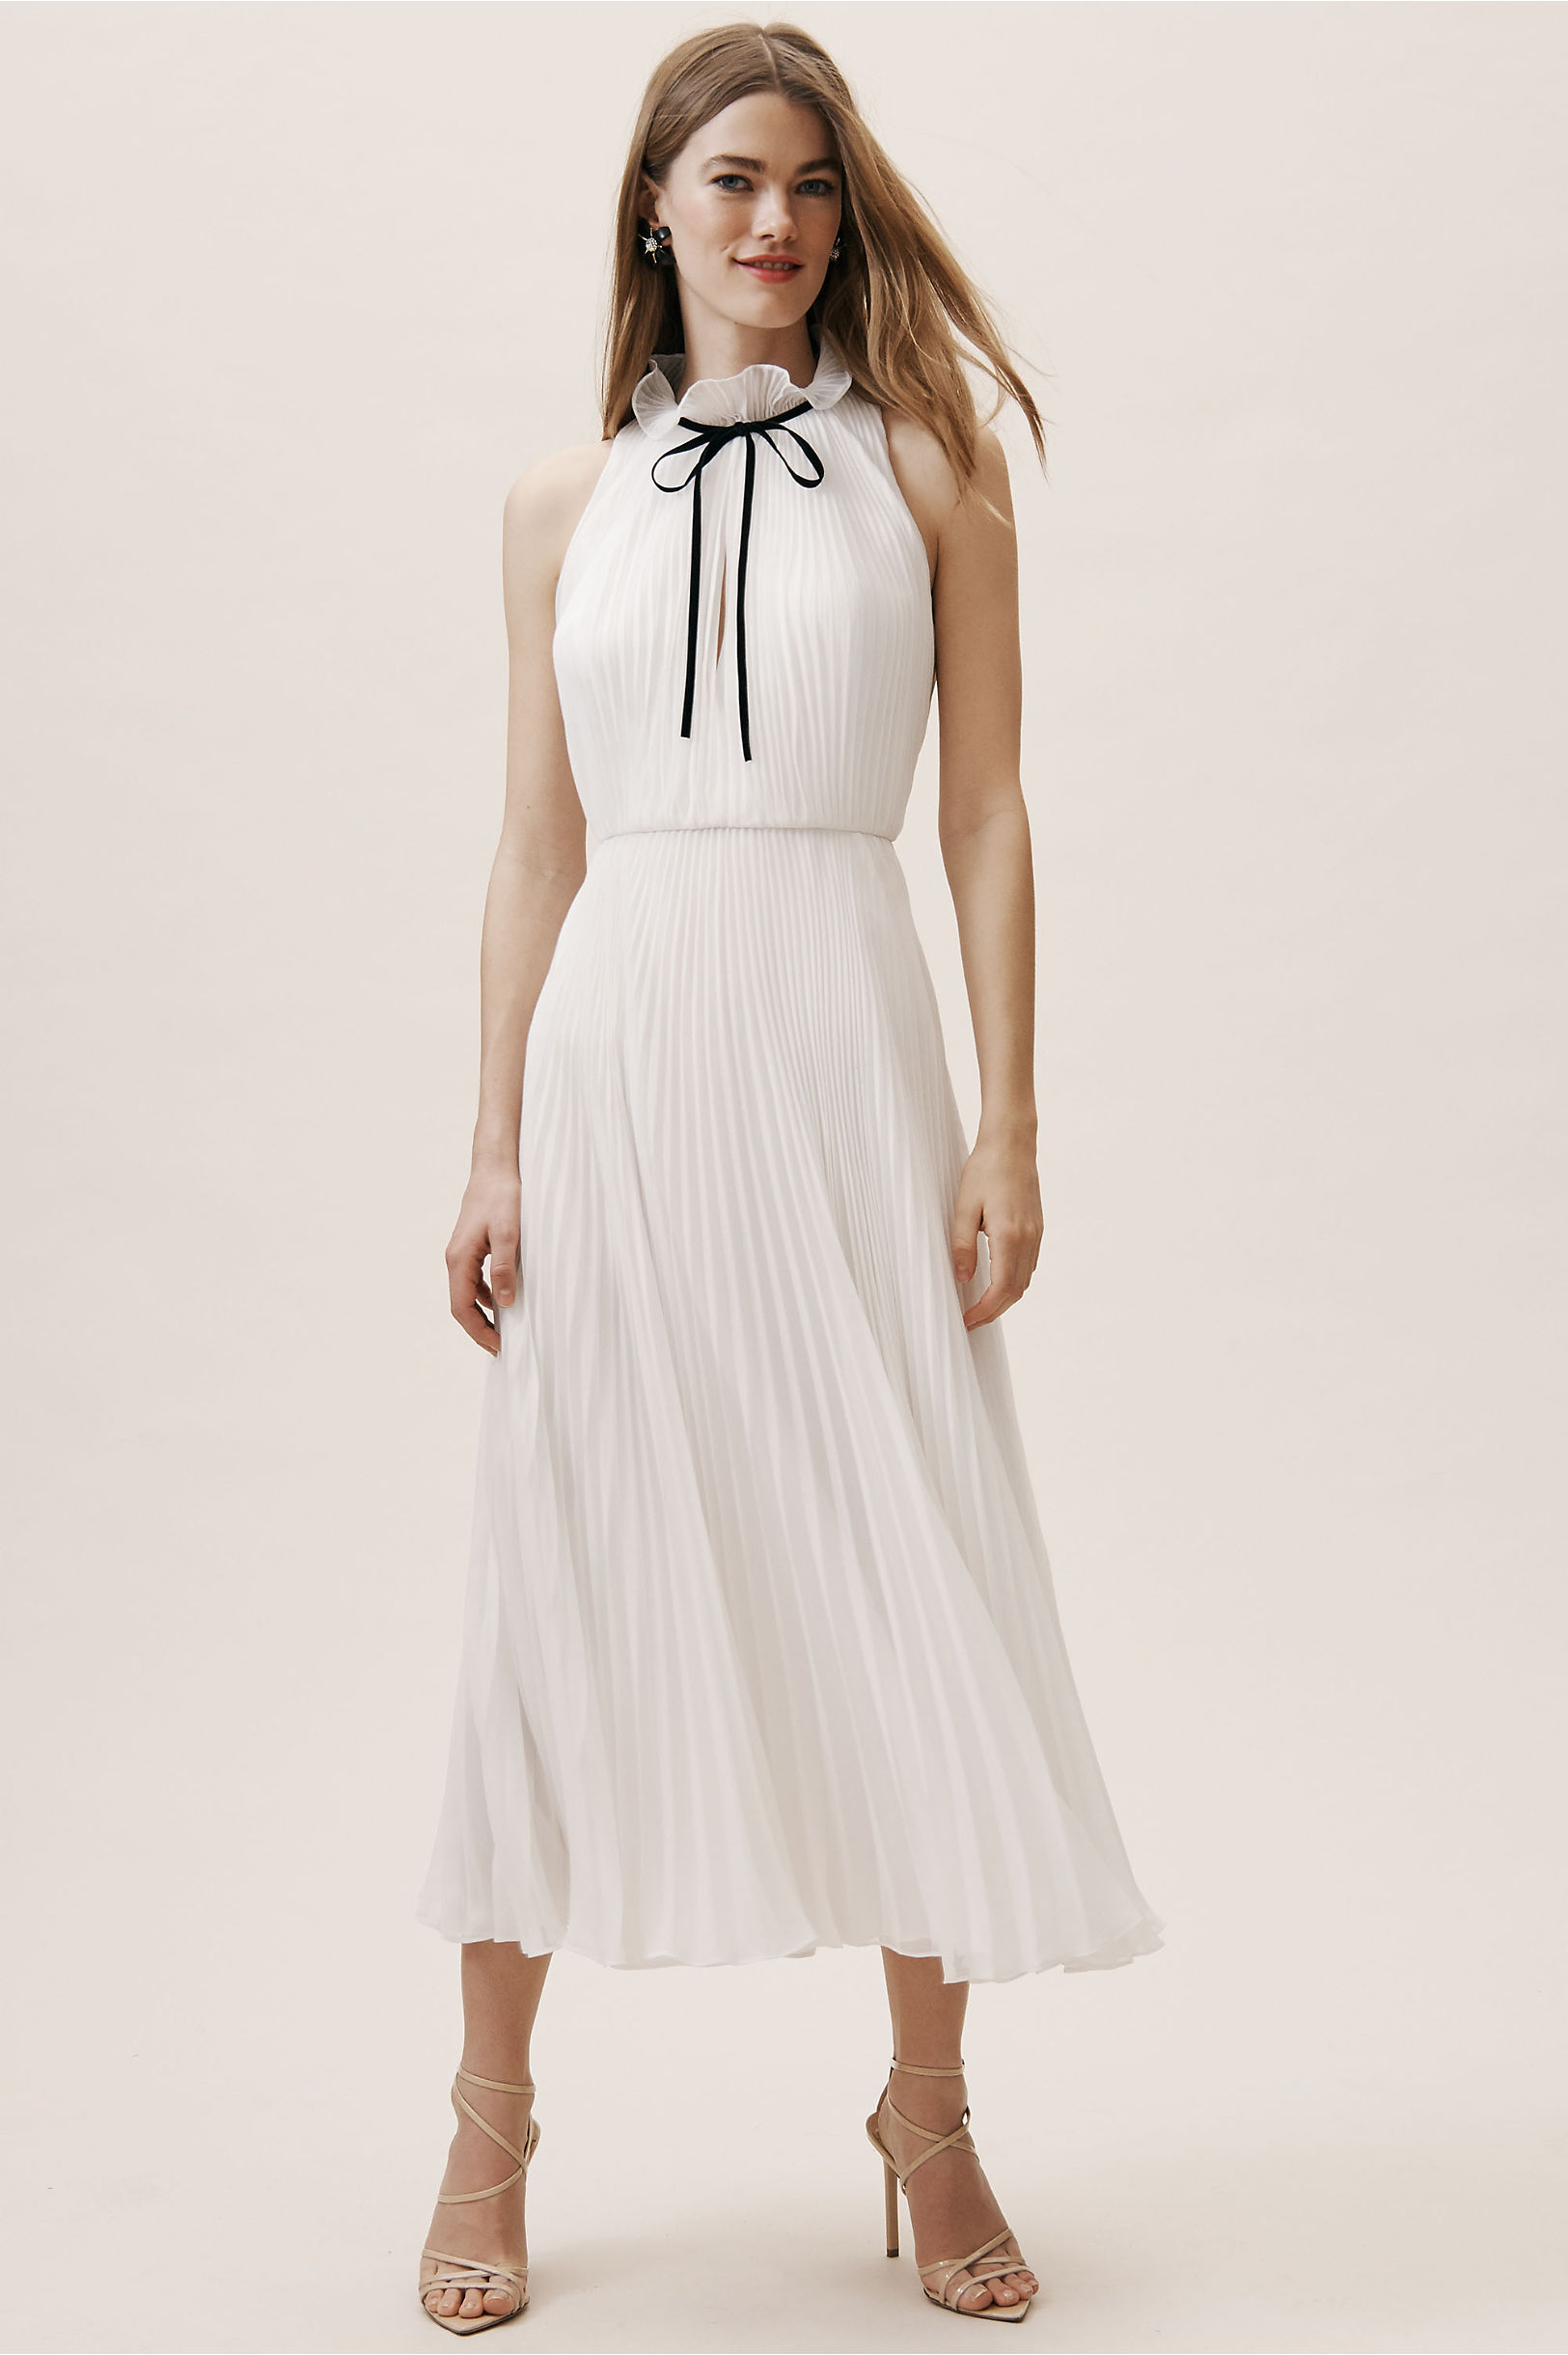 Spring Bridal Shower Dresses, BHLDN Keene